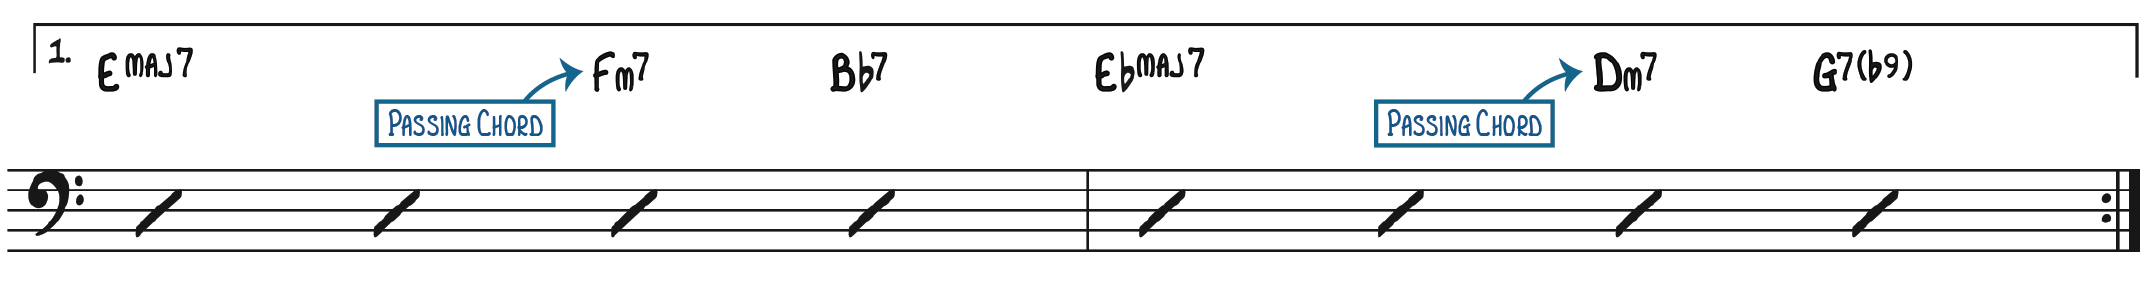 1st Ending with Added Passing Chords 2-5-1 ii-V-I Jazz piano